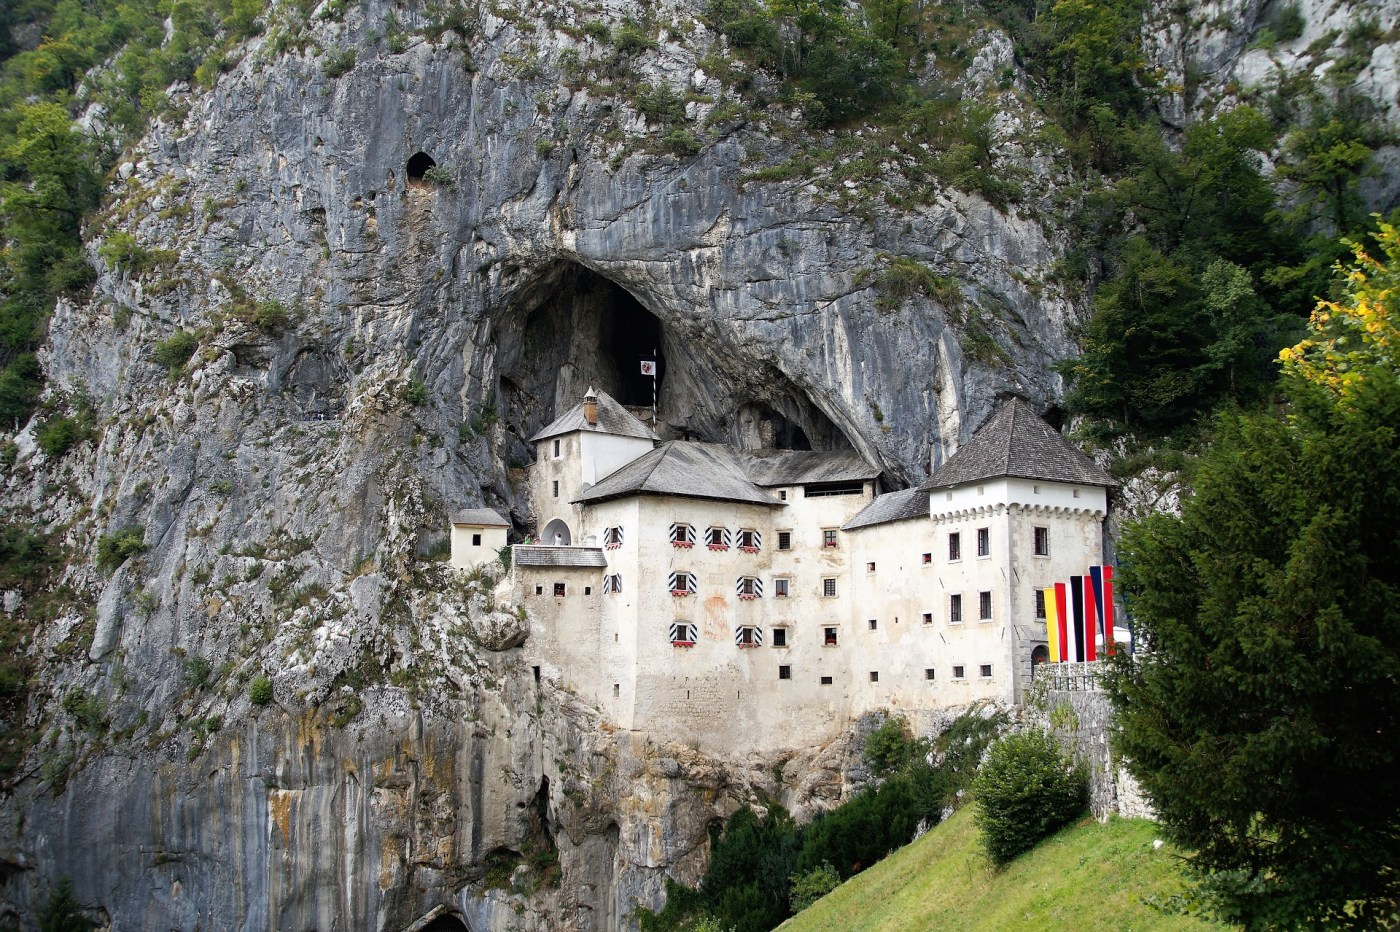 Castle in a cave